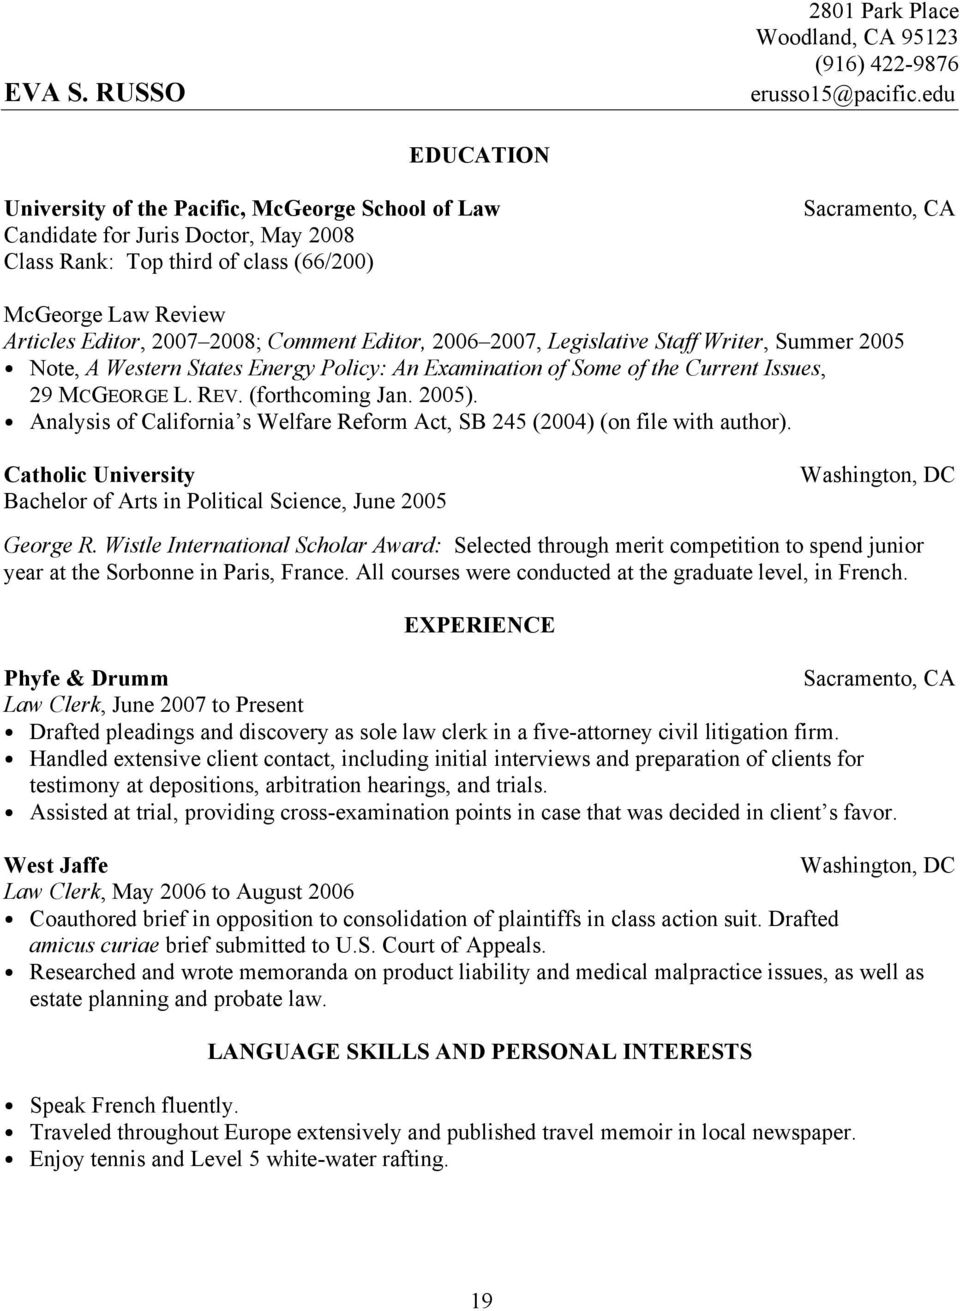 2008; Comment Editor, 2006 2007, Legislative Staff Writer, Summer 2005 Note, A Western States Energy Policy: An Examination of Some of the Current Issues, 29 MCGEORGE L. REV. (forthcoming Jan. 2005).